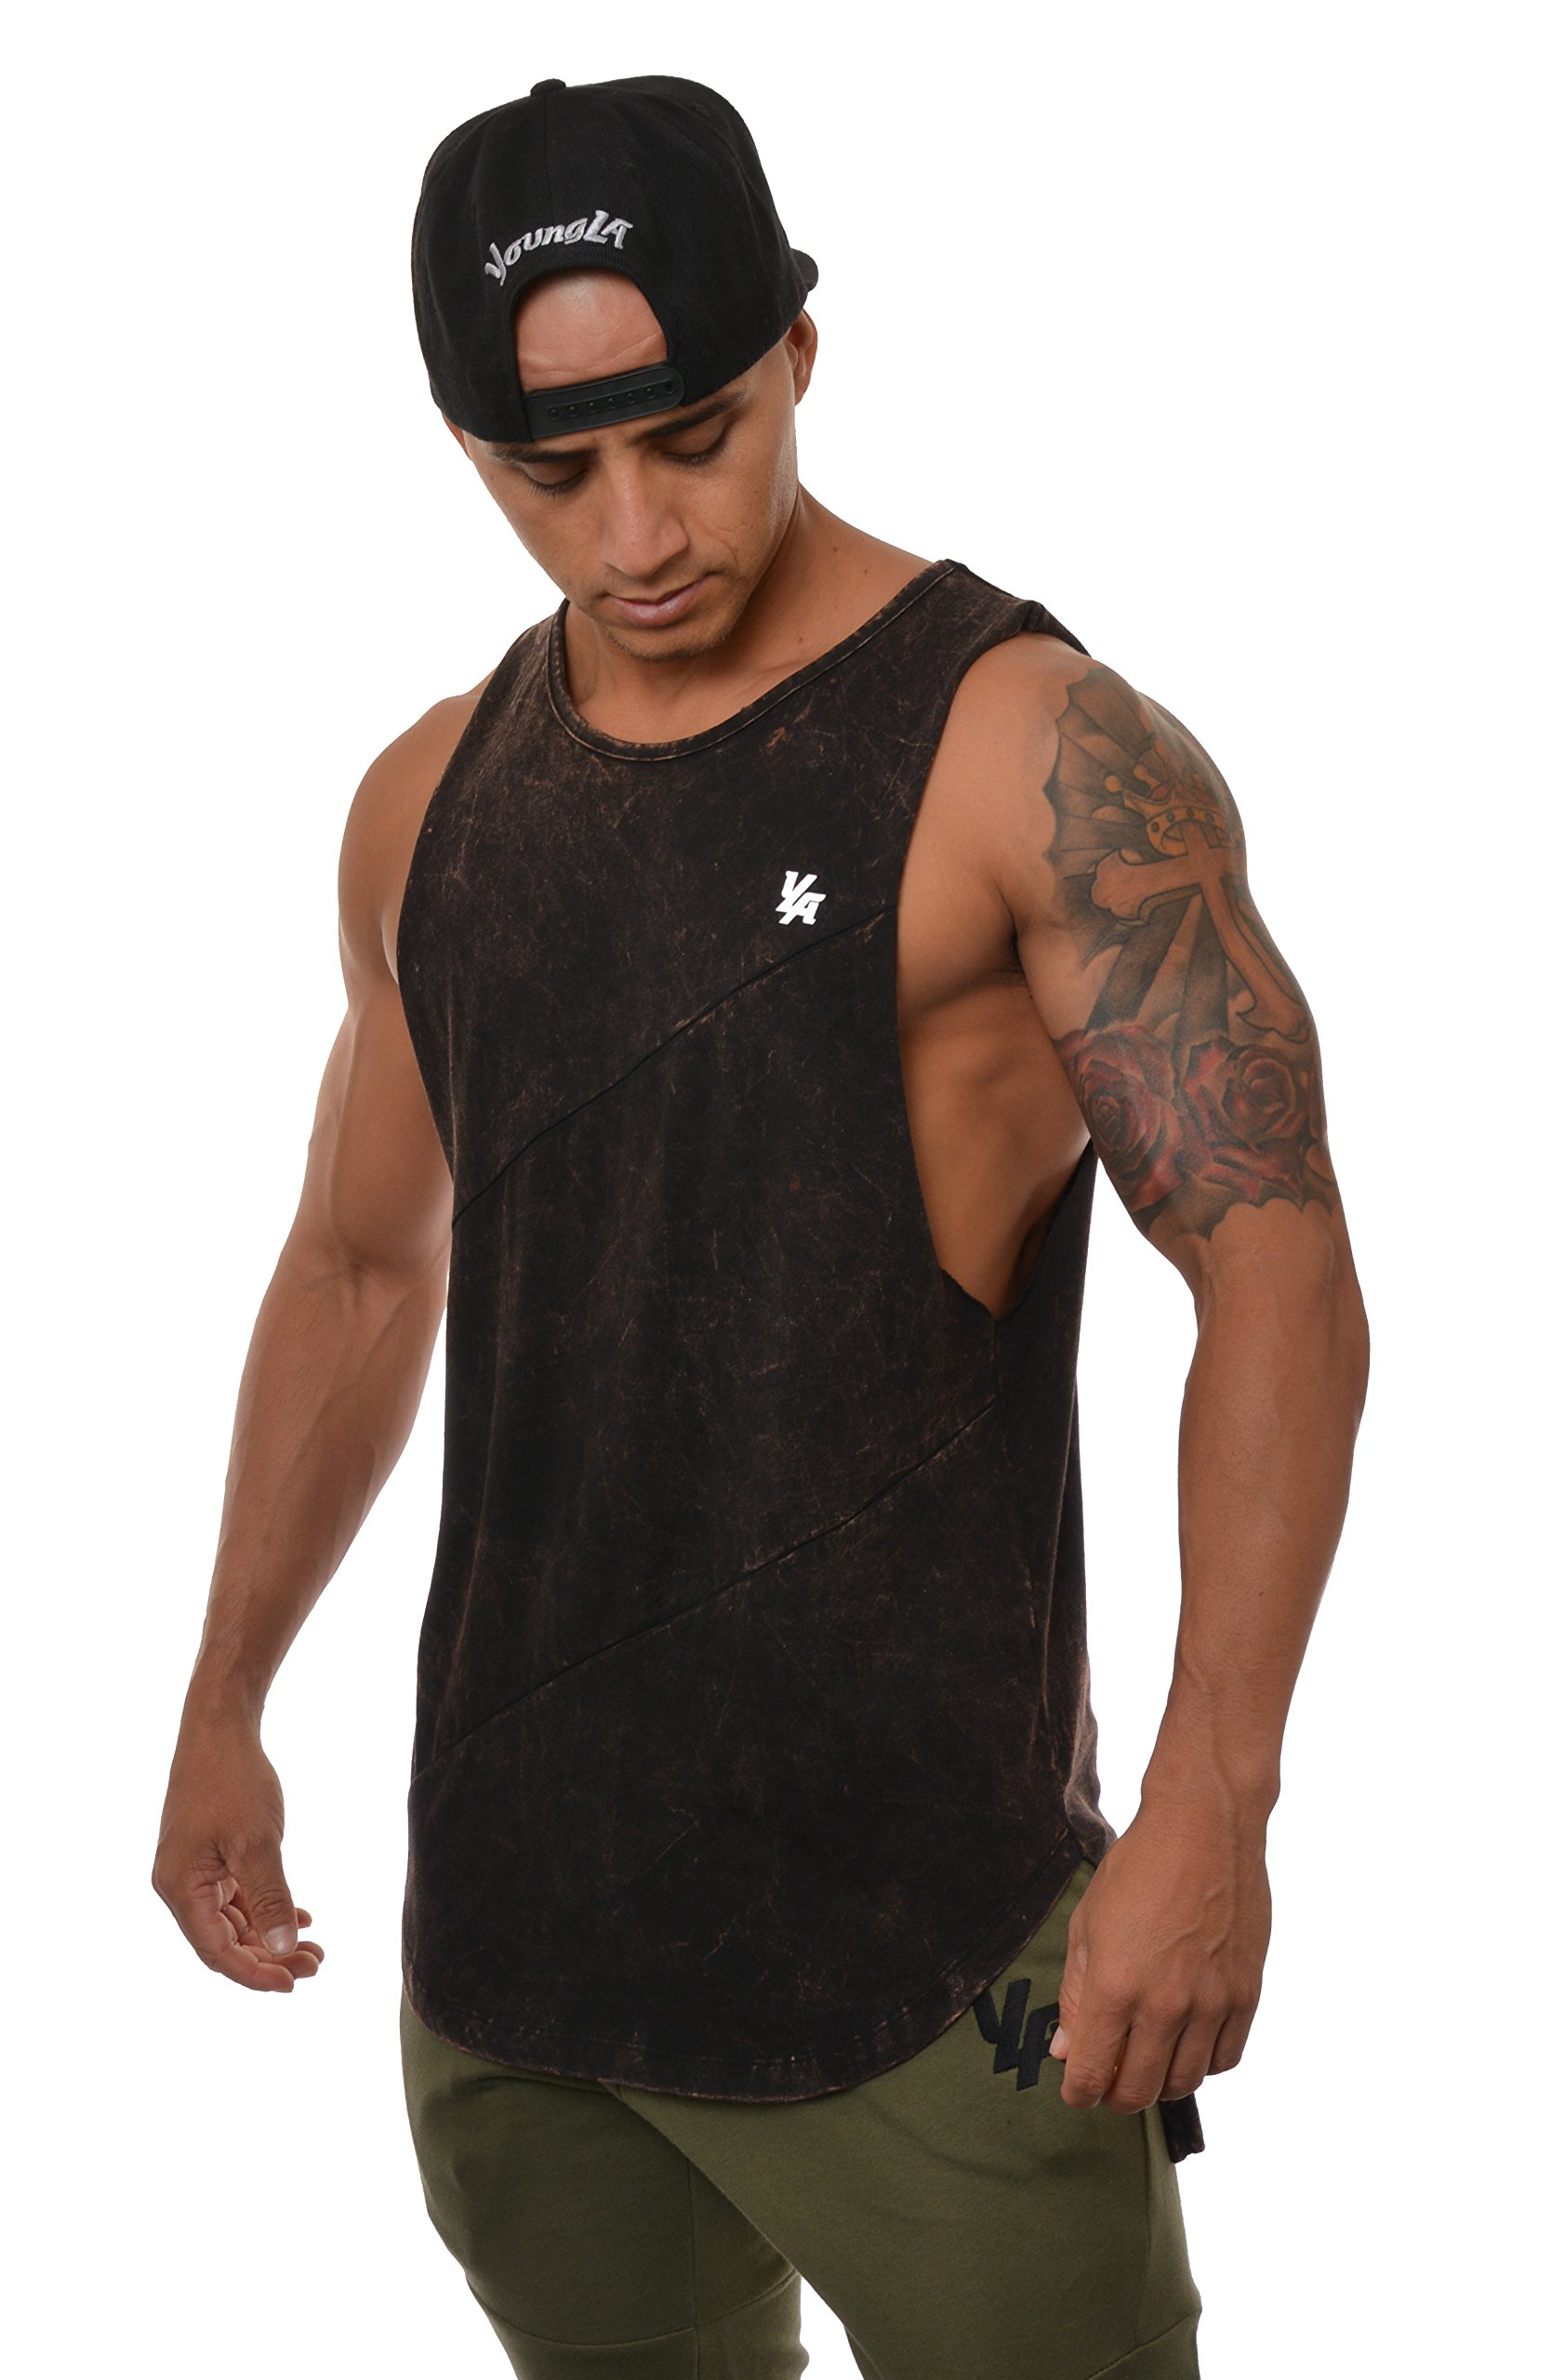 YoungLA Long Tank Tops for Men Muscle Shirt Bodybuilding Gym Athletic Training Sports Everyday Wear 306 Black Acid Washed Small